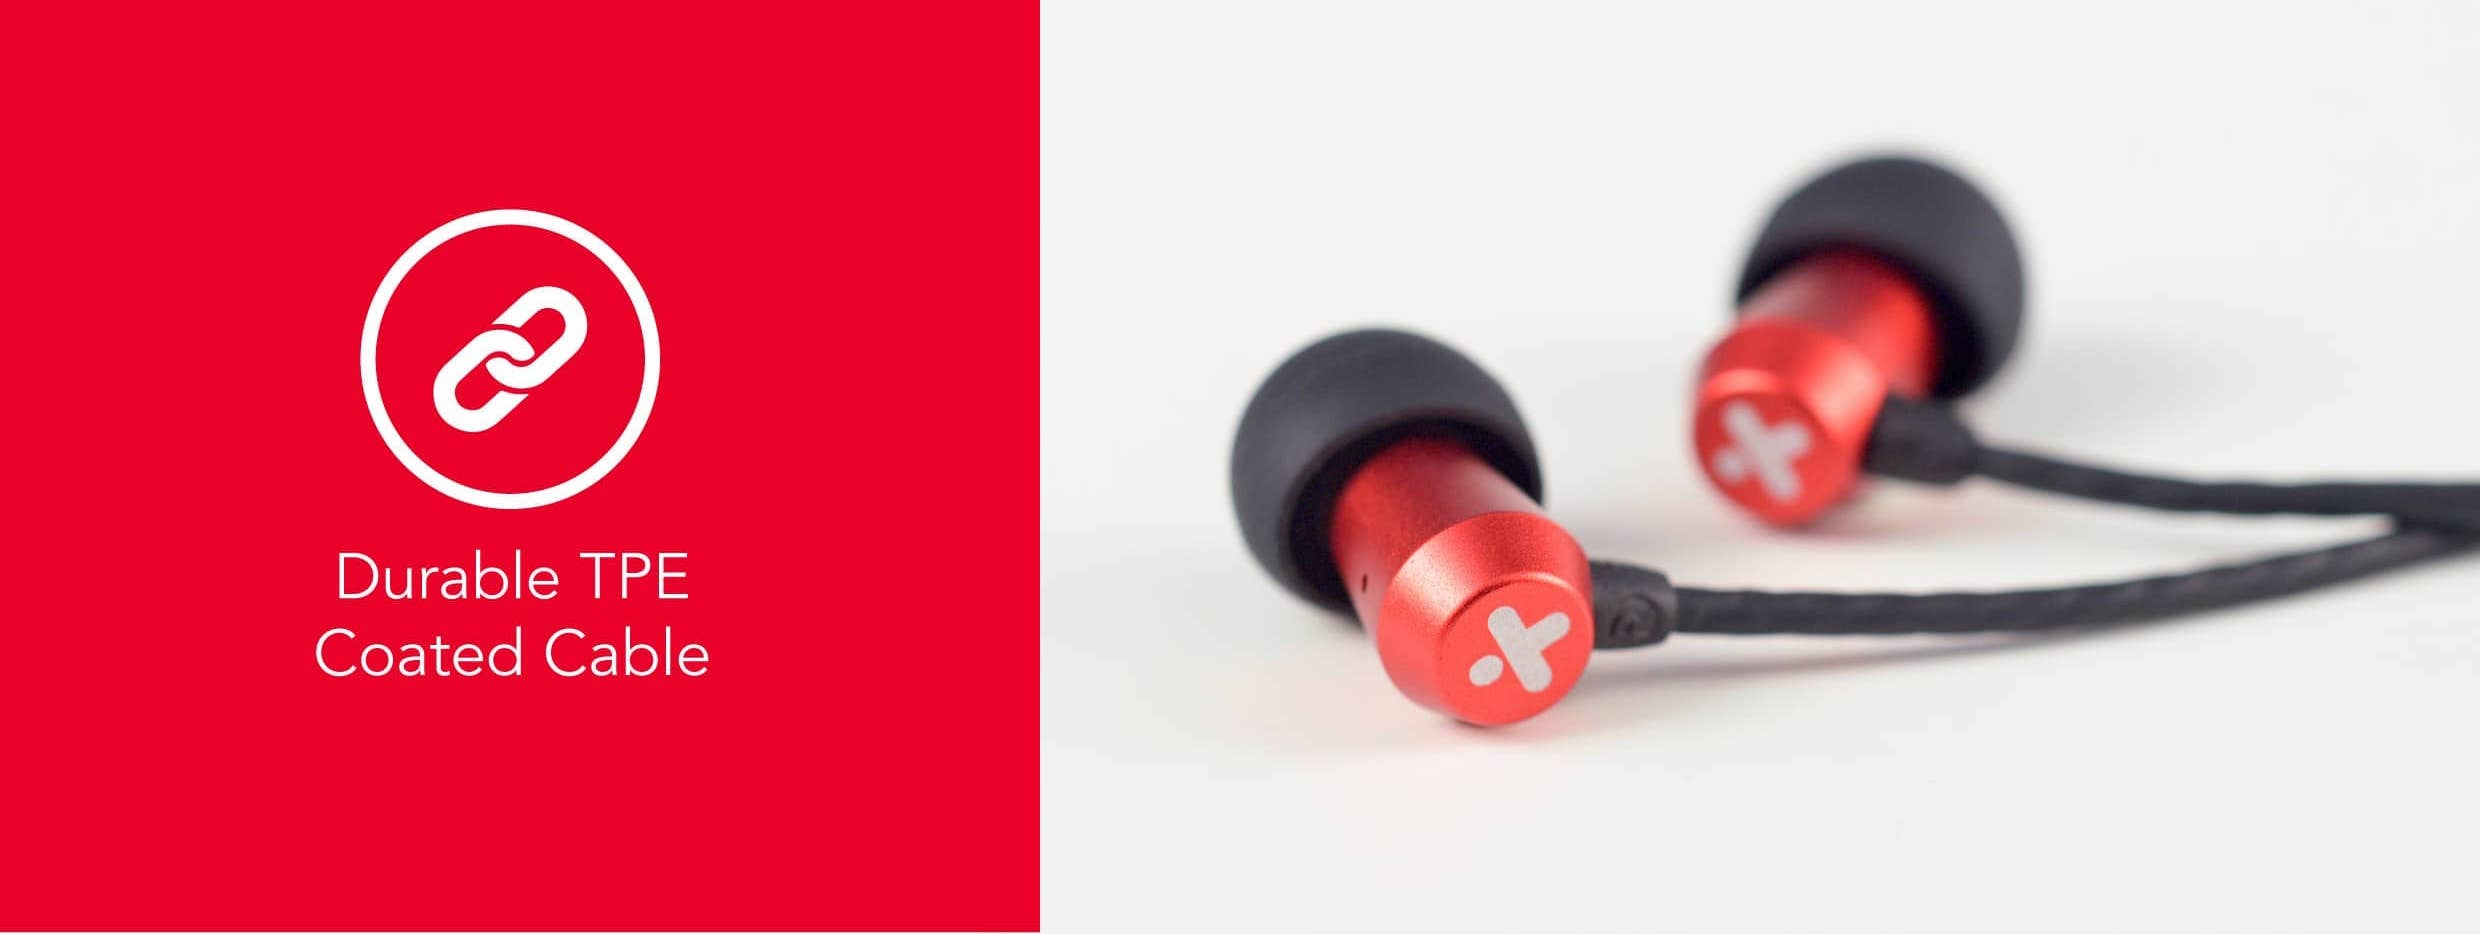 X-mini-Xyrius-Balanced-Hi-Res-Audio-Wired-Xoundbuds-earphones-Durable-TPE-Coated-Cable